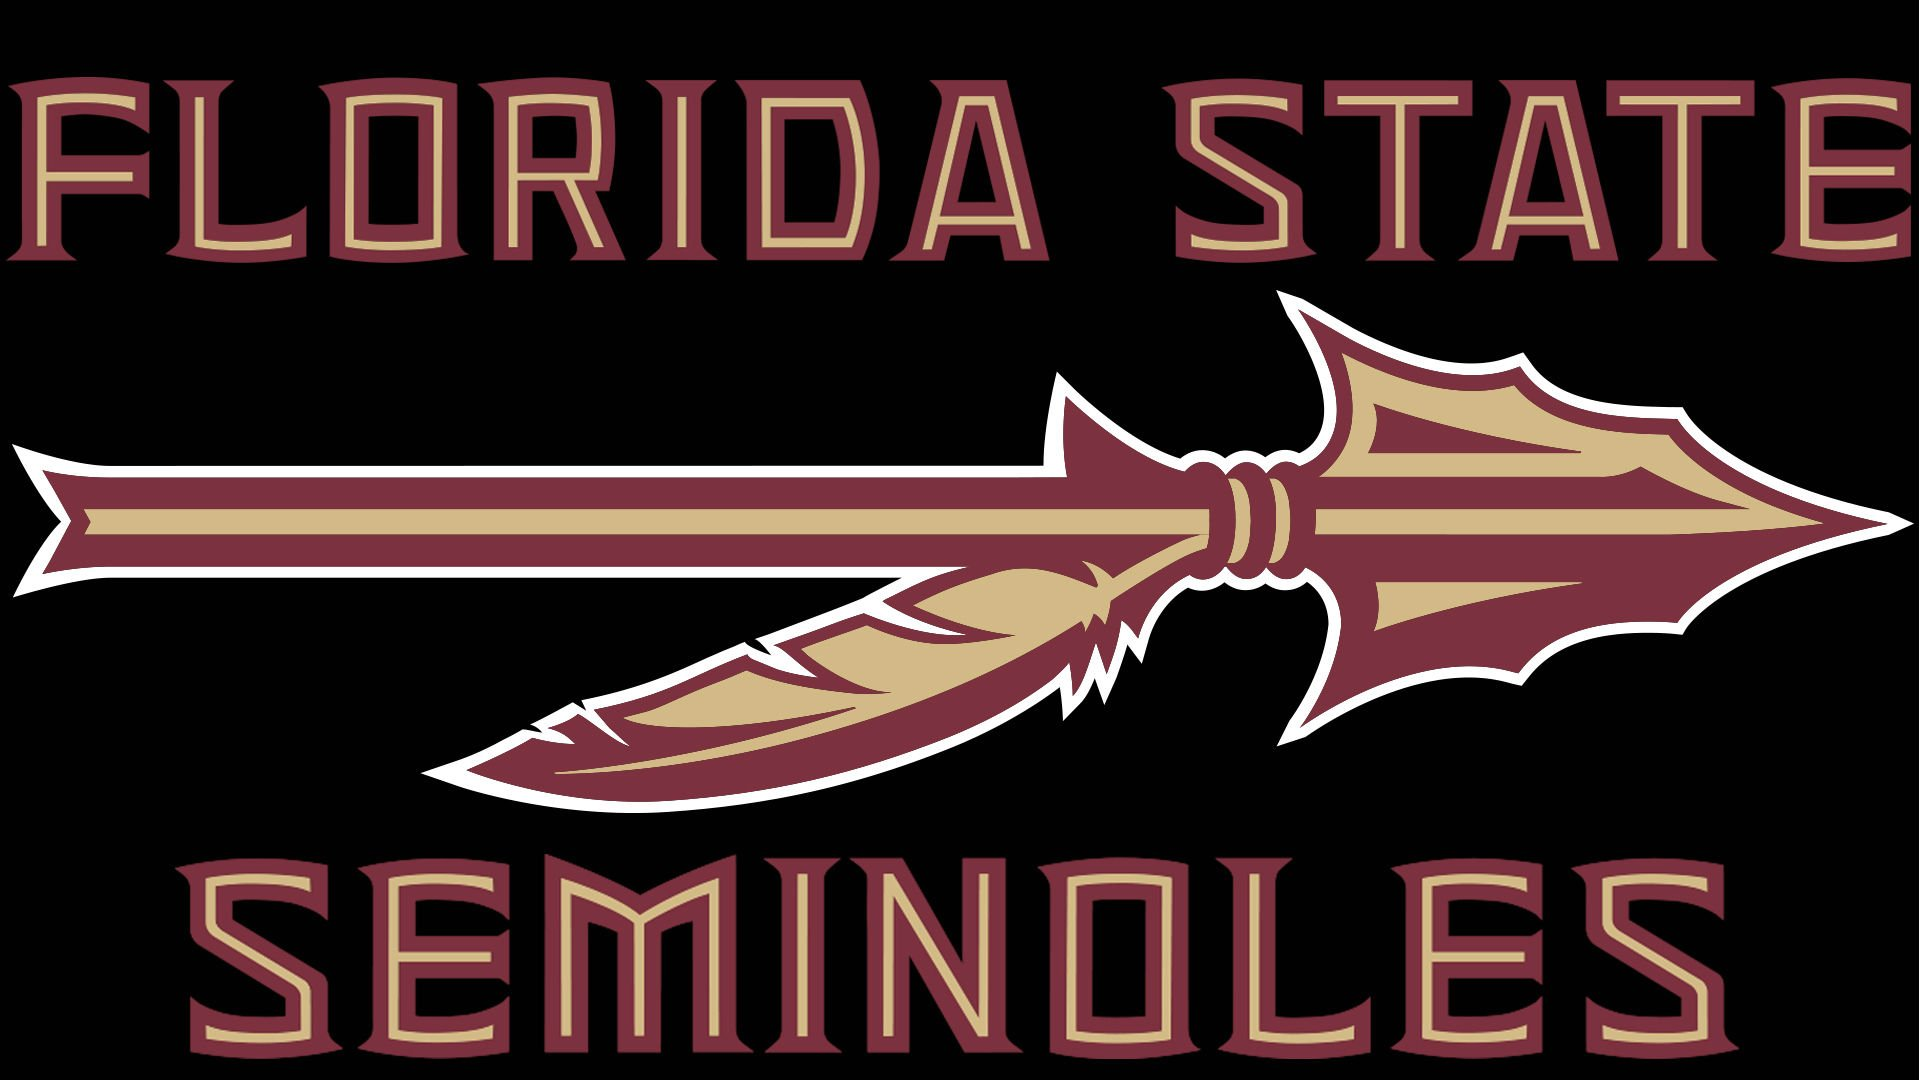 Florida state seminoles college football wallpaper 1920x1080 florida state seminoles college football wallpaper 1920x1080 592807 wallpaperup voltagebd Choice Image